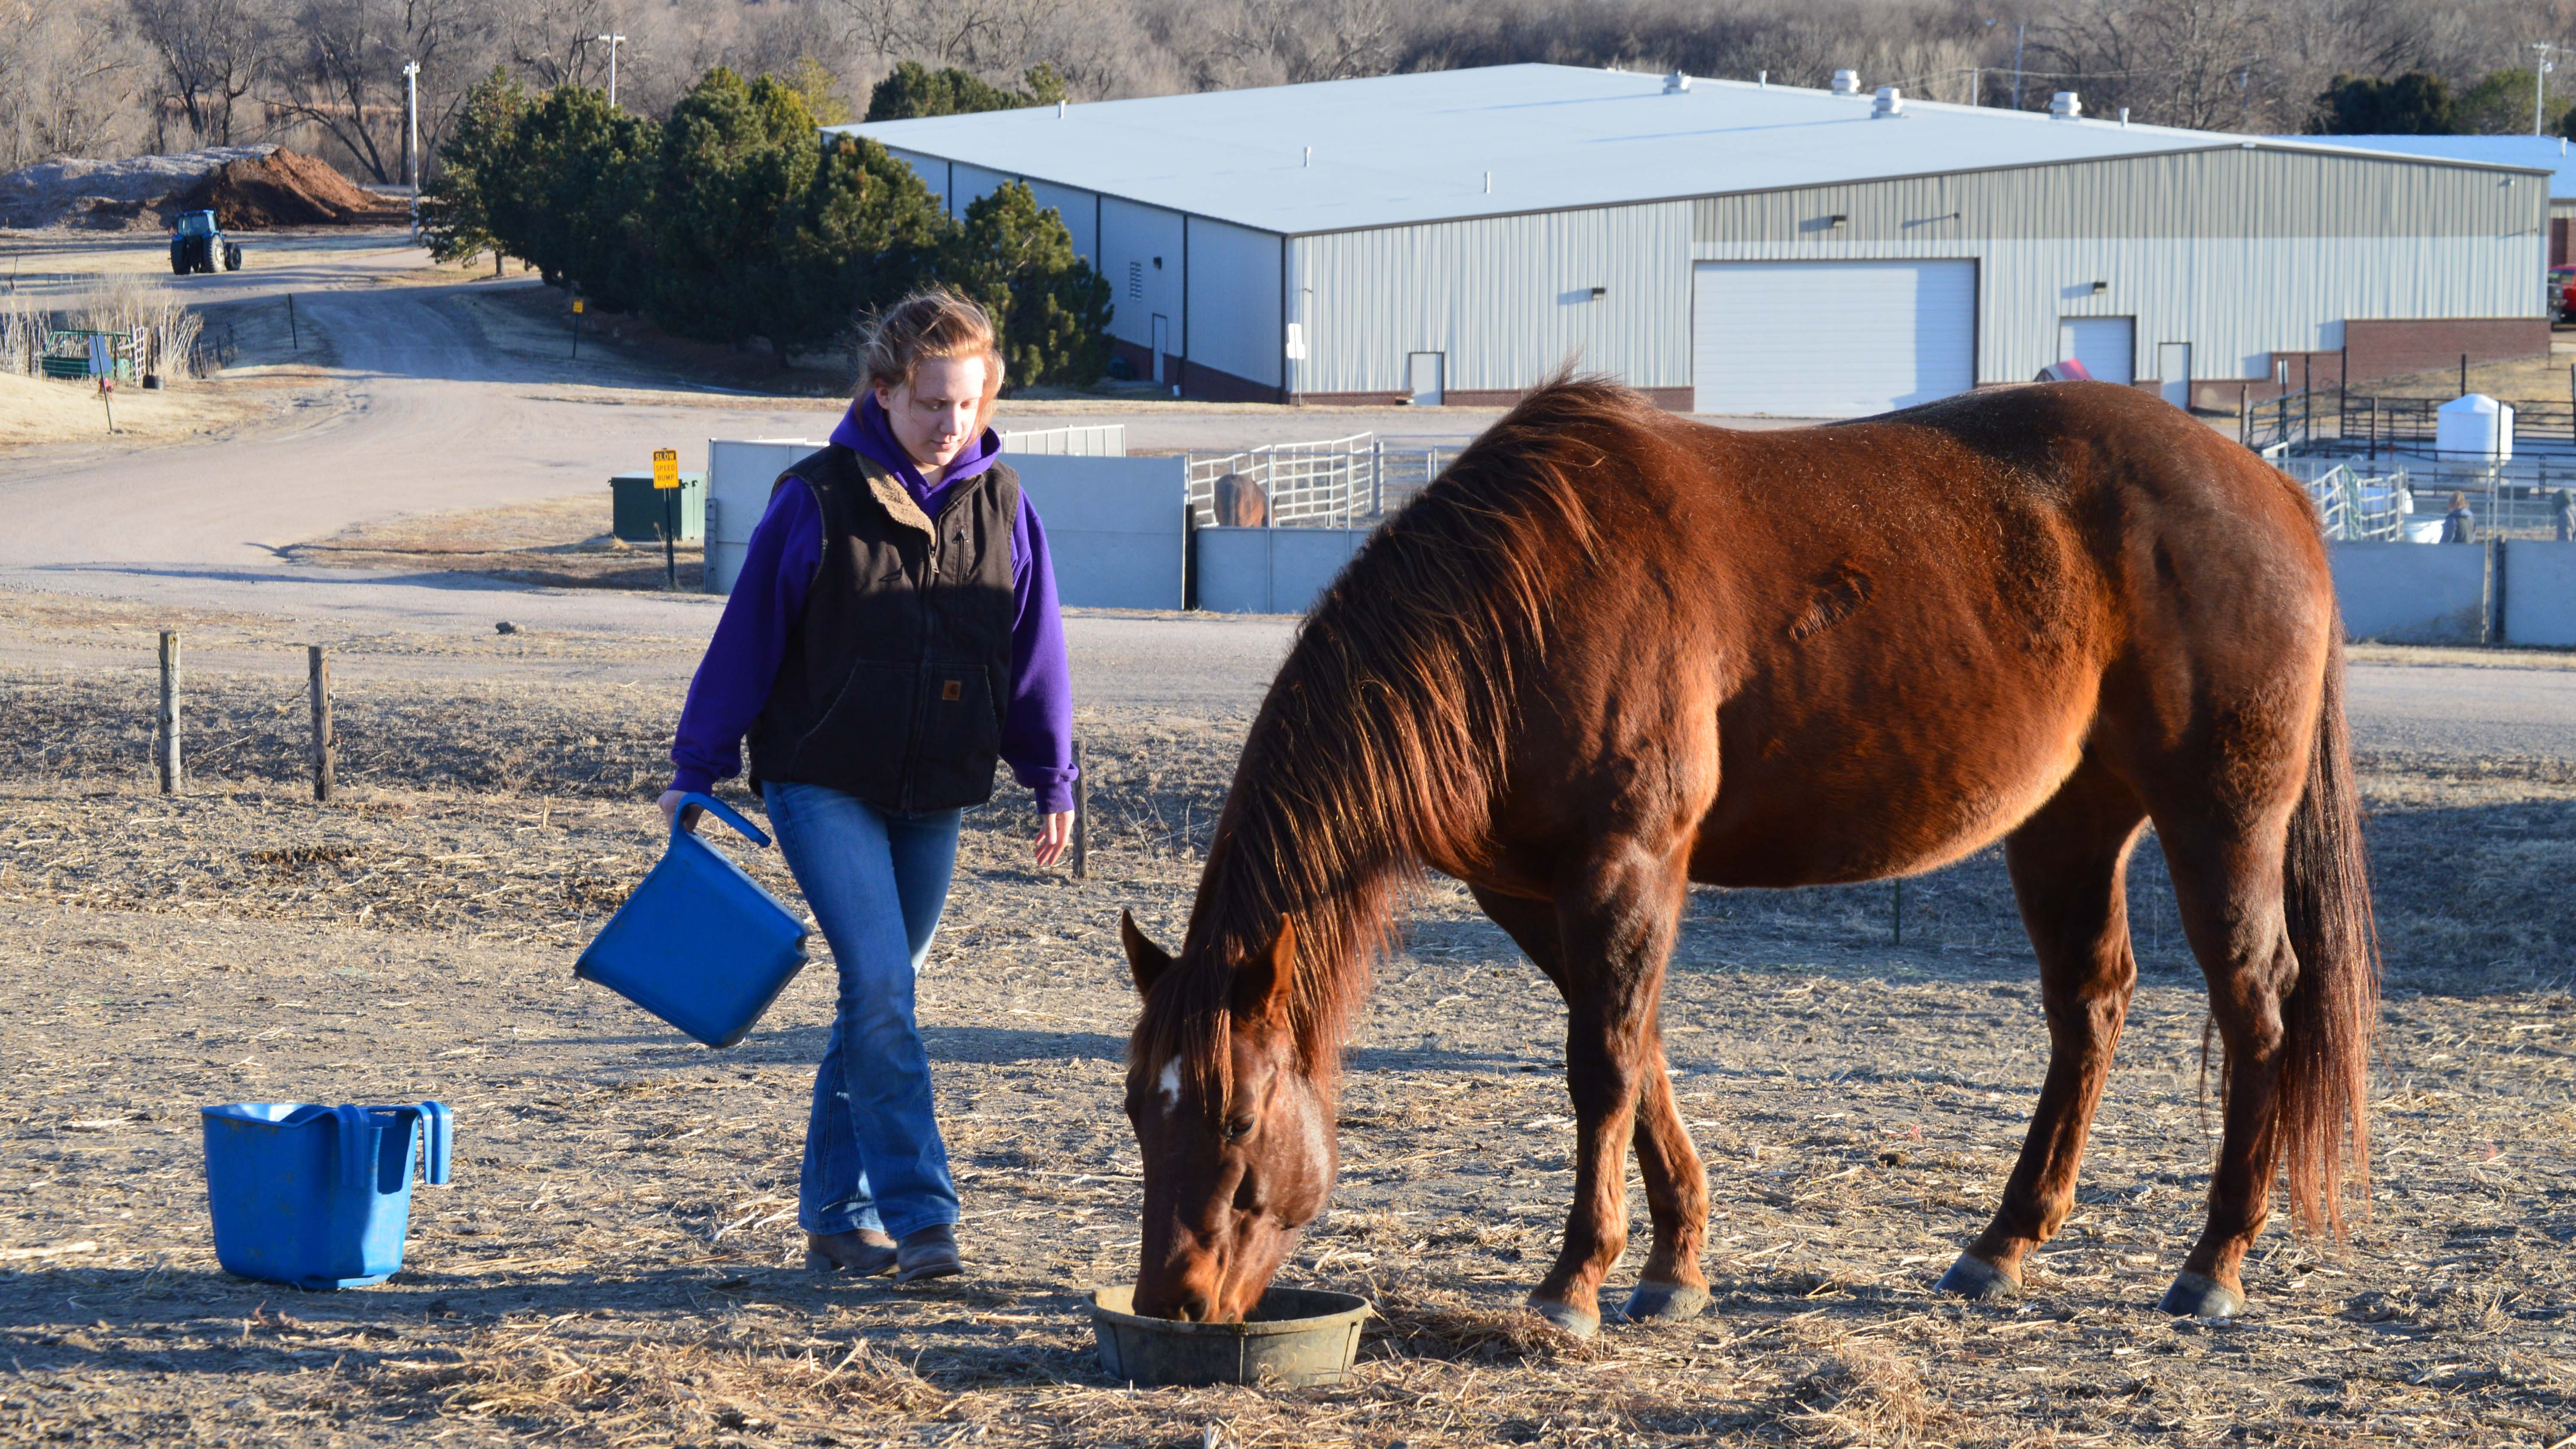 Feeding horses at the NCTA campus in February 2020. Many winter classes and public events are at the indoor arena of the Livestock Teaching Center shown in the background. (Crawford / NCTA News photo)